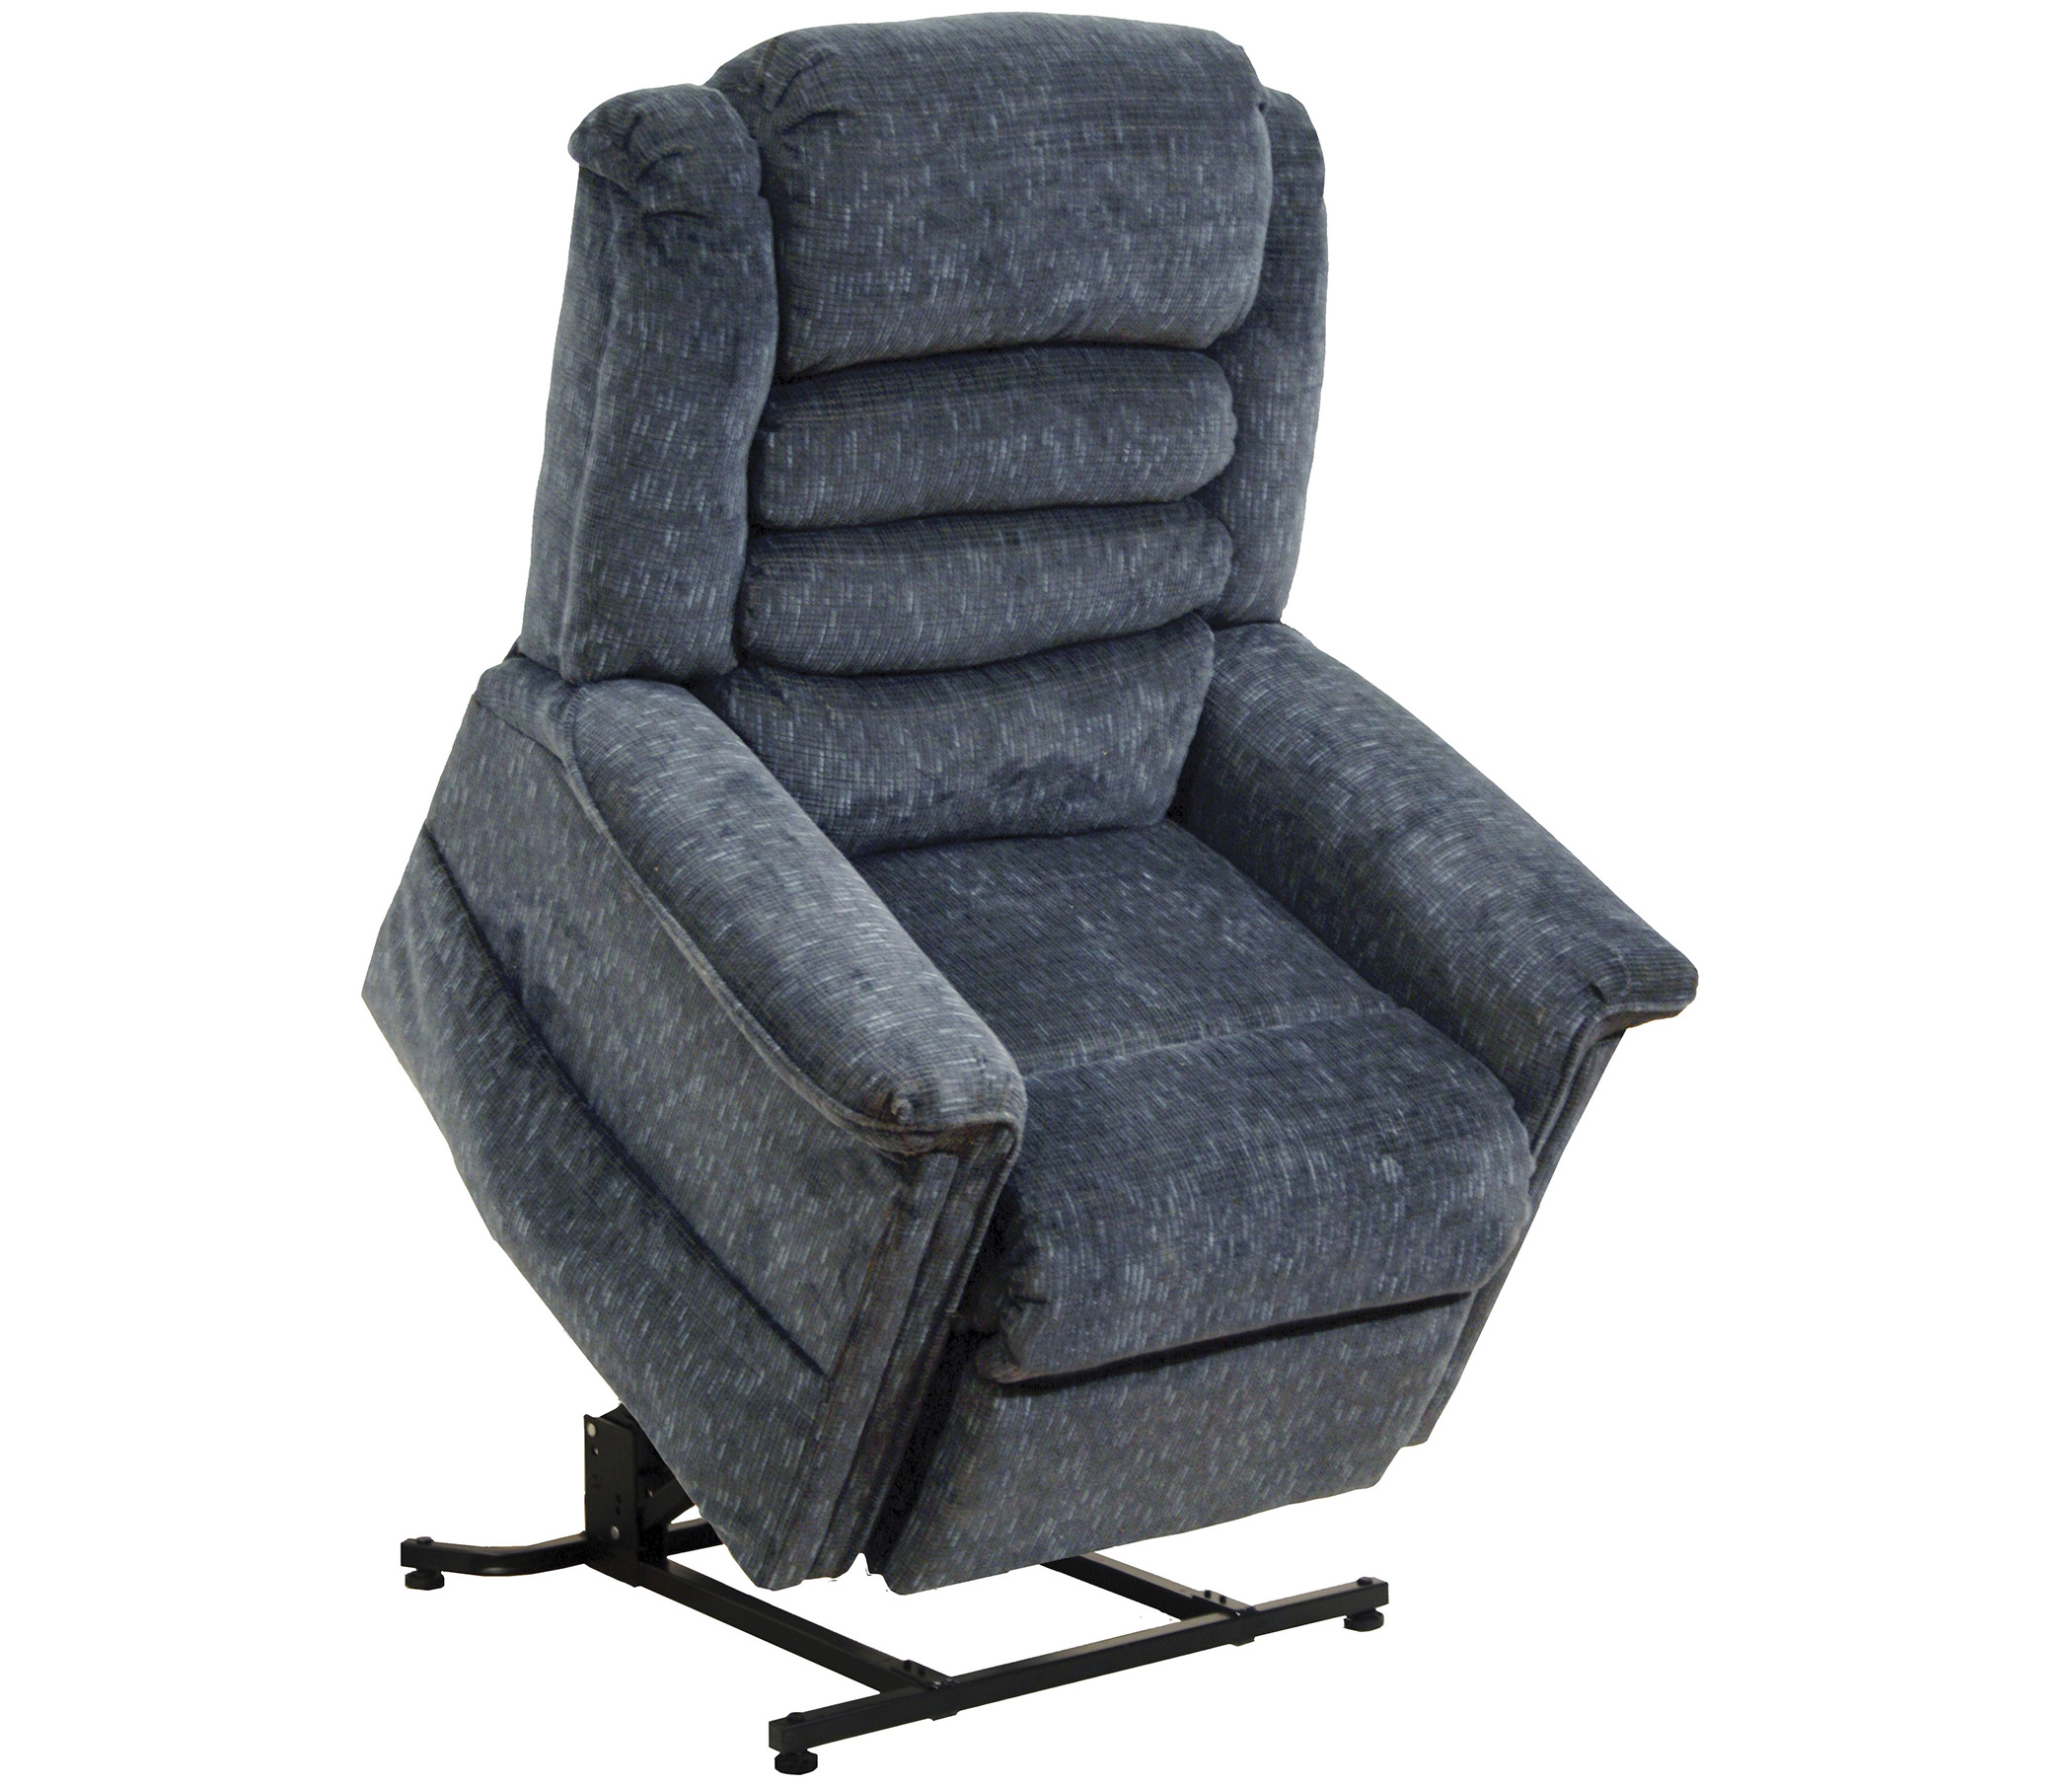 The Perfect Chair Zero Gravity Recliner by Human Touch Manual and